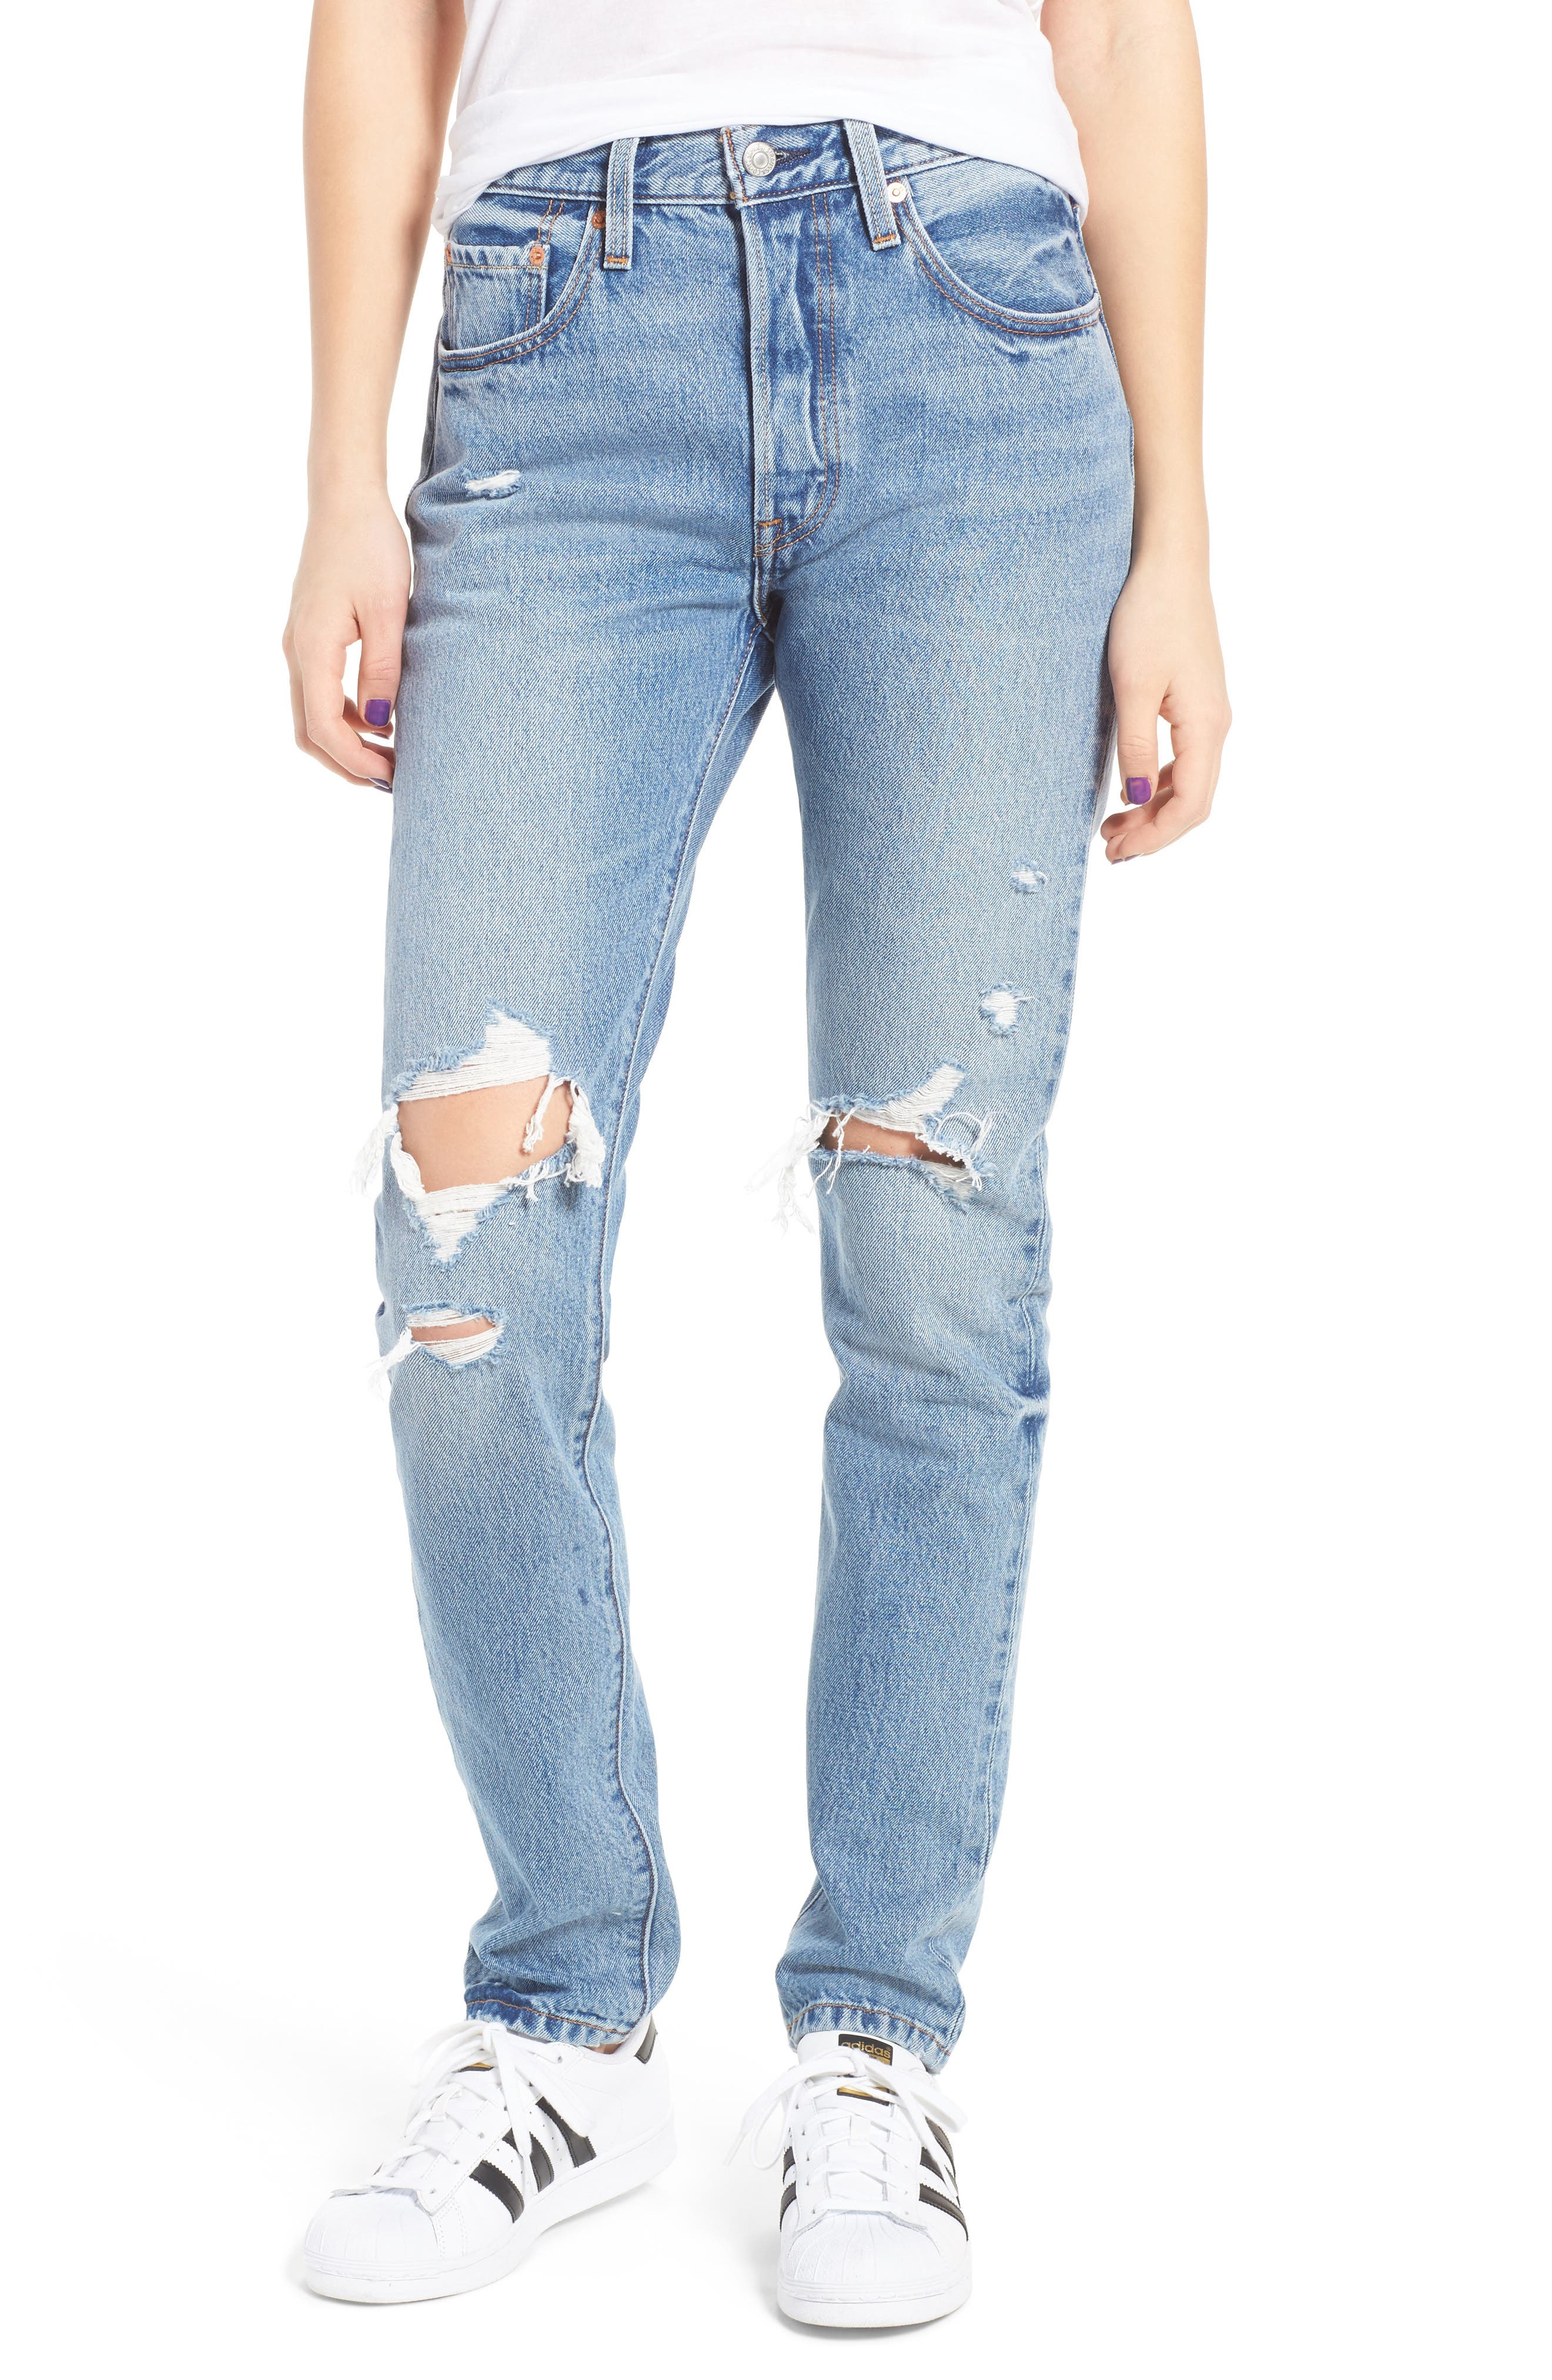 LEVI'S<SUP>®</SUP>, Levis<sup>®</sup> 501 Ripped Skinny Jeans, Main thumbnail 1, color, 400